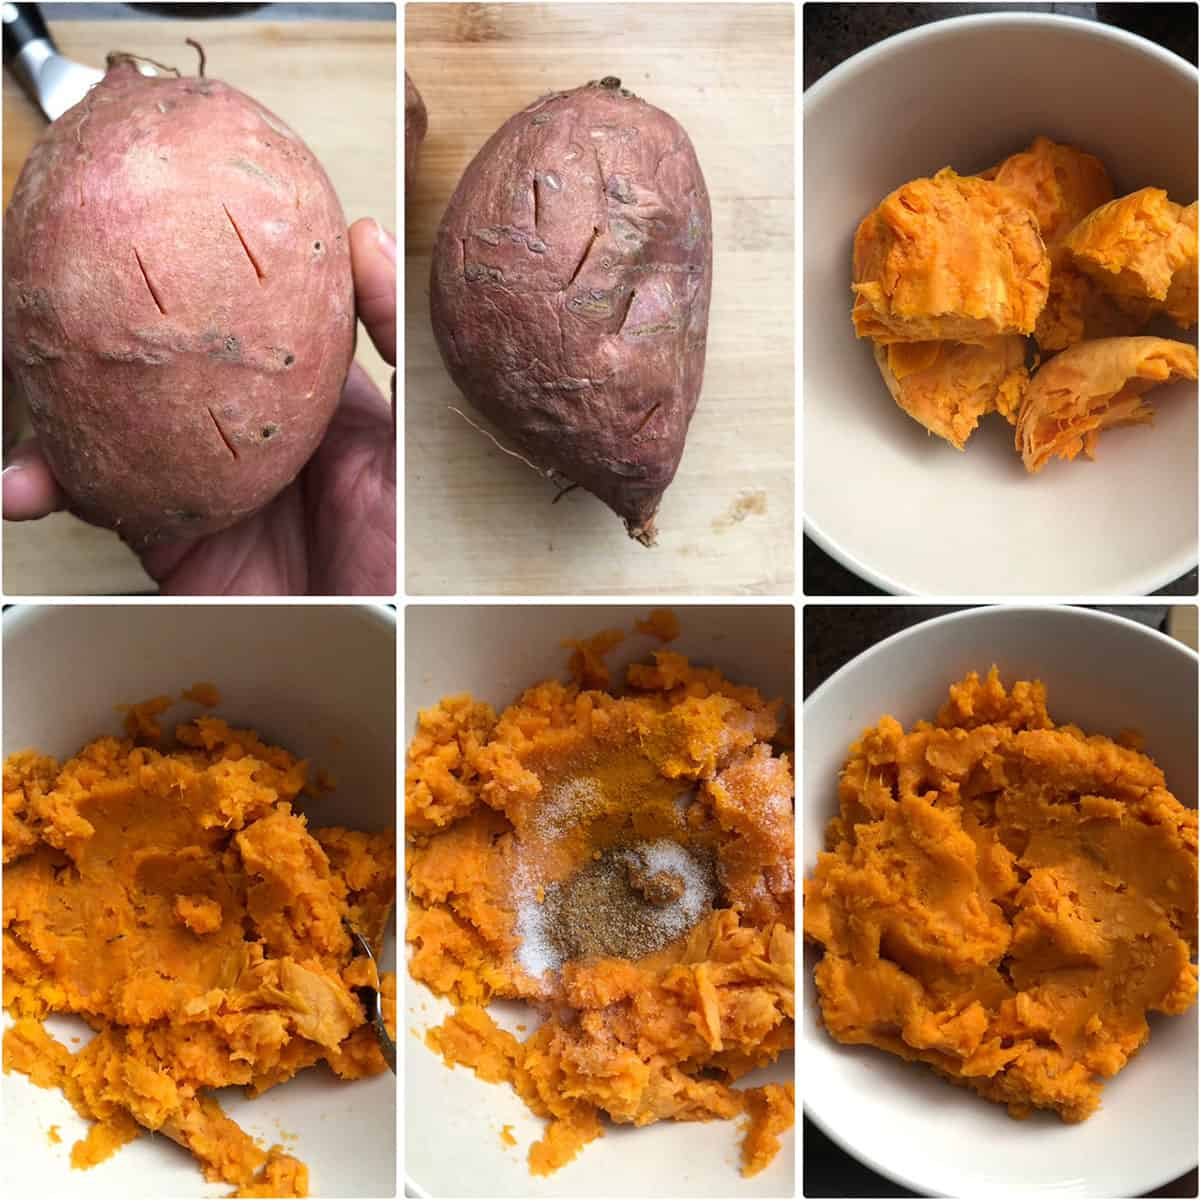 Step by step photos showing microwaved sweet potatoes, peeled and mashed with spices